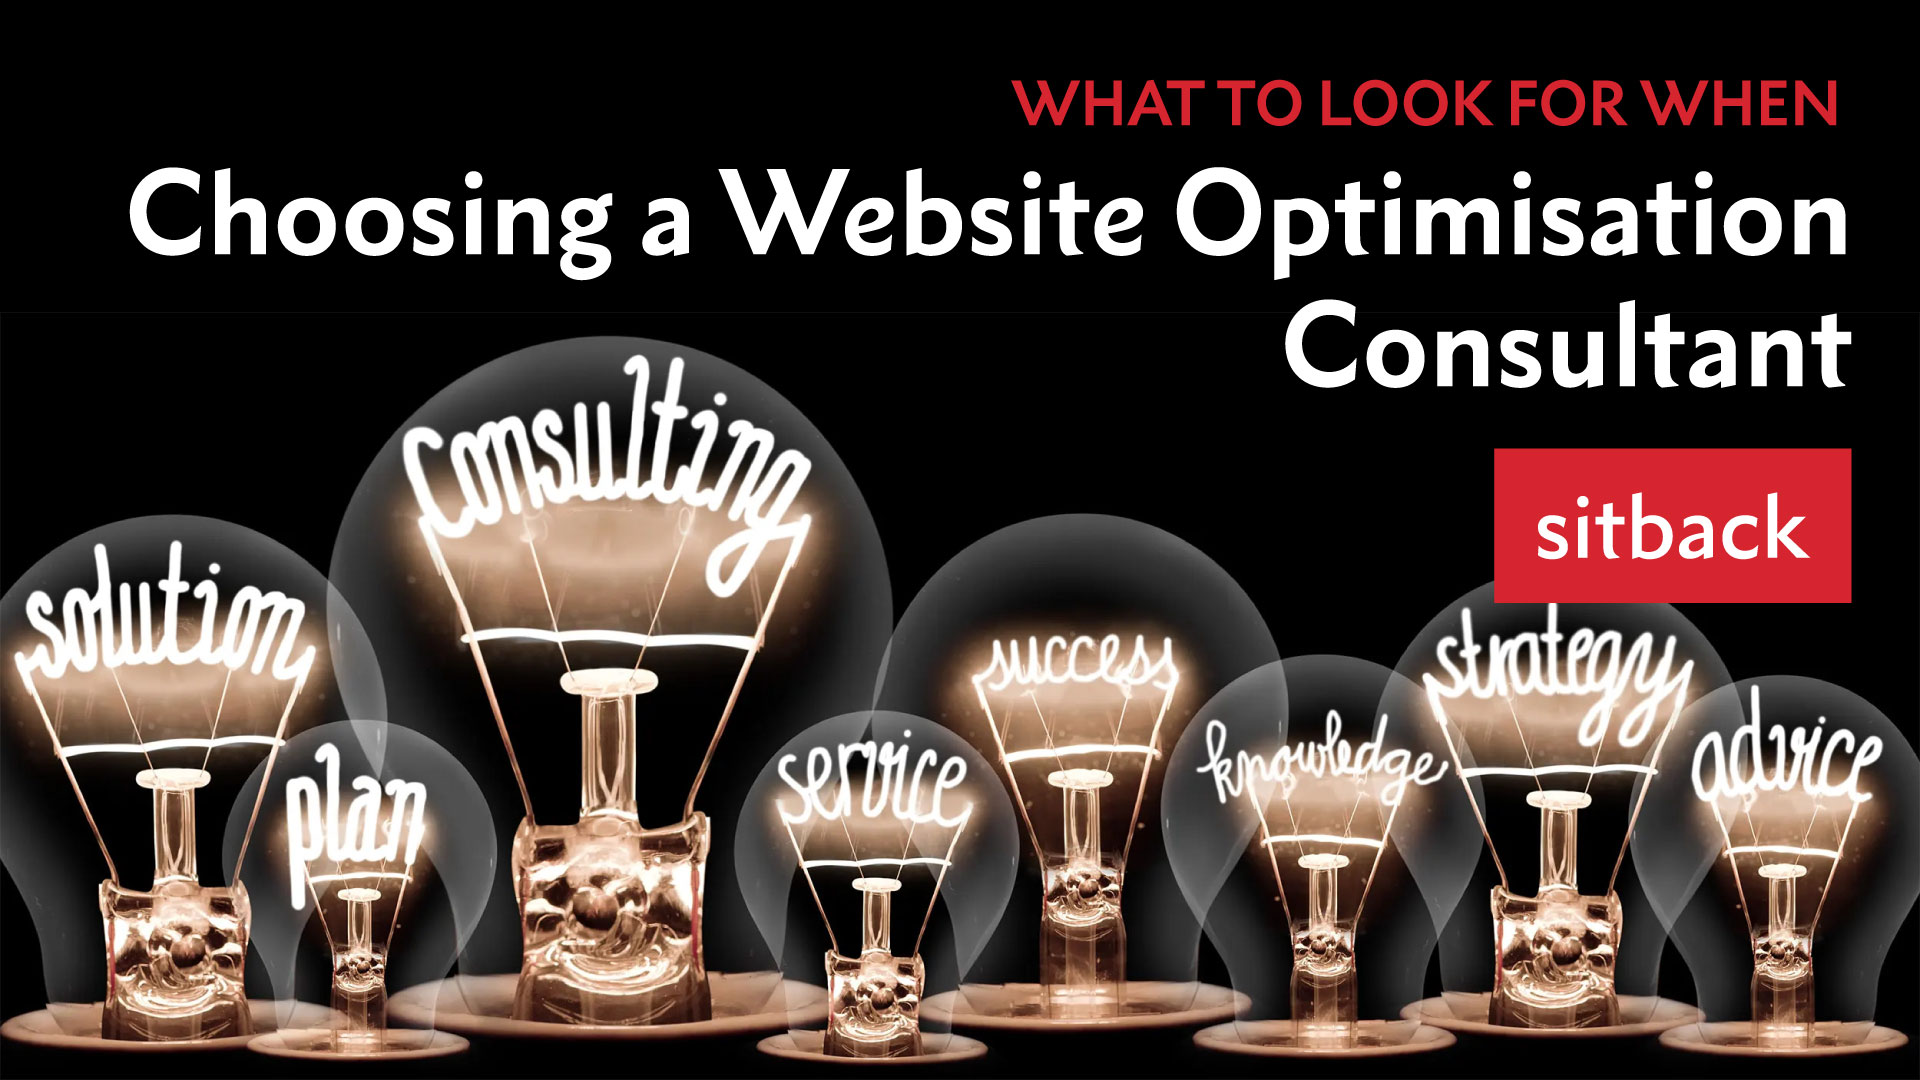 What to Look for When Choosing a Website Optimisation Consultant